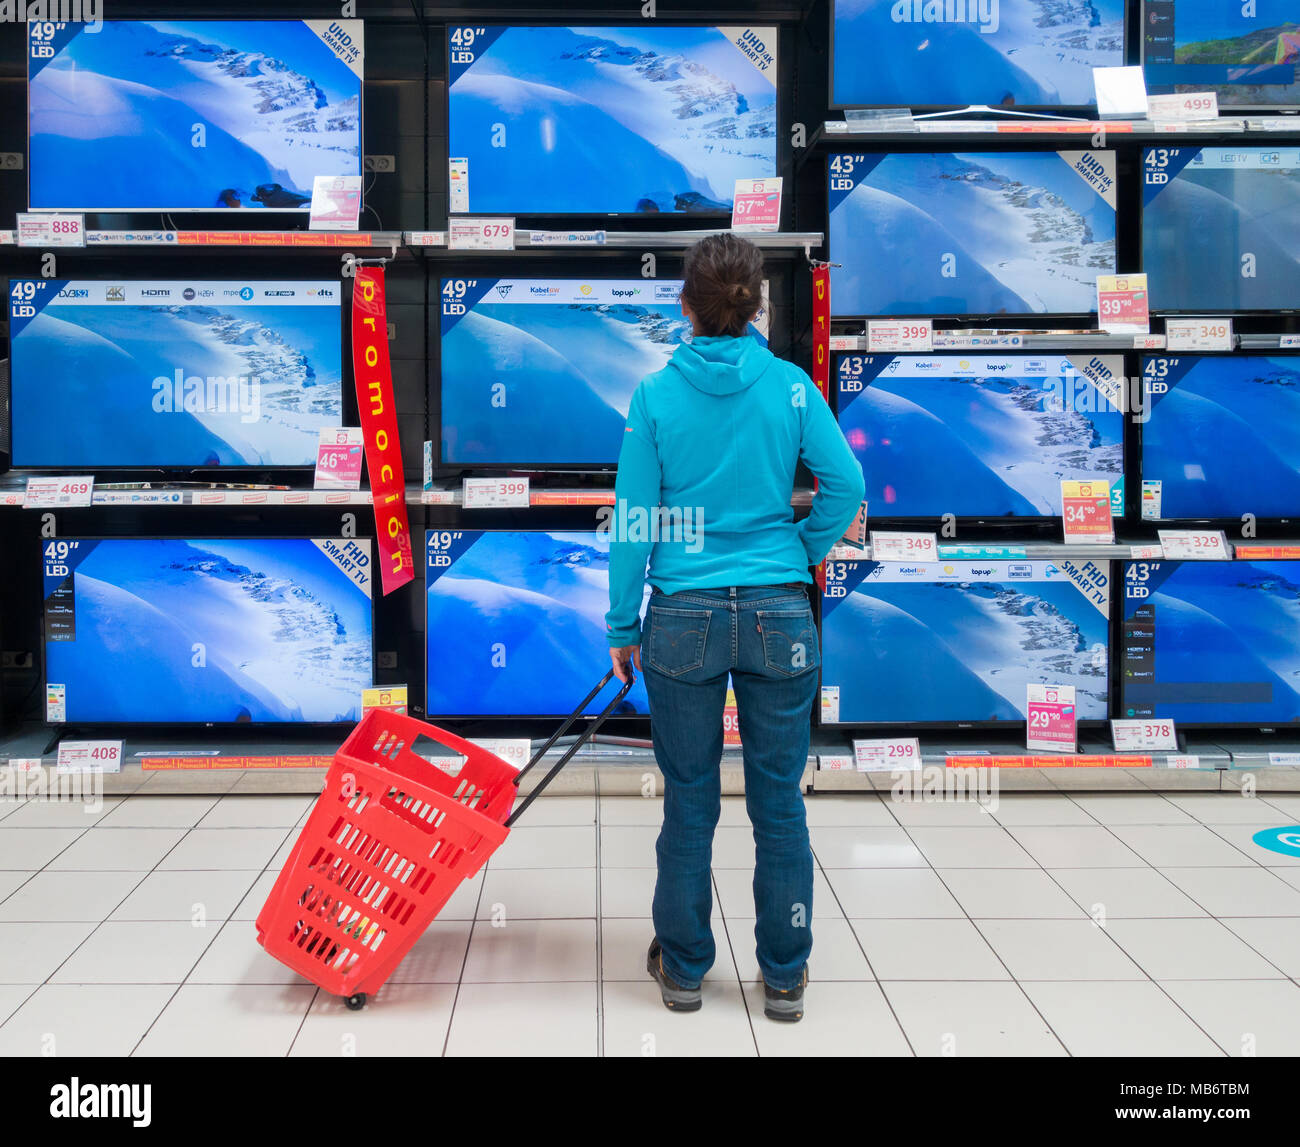 Woman looking at new High definition TV screens in electrical store - Stock Image